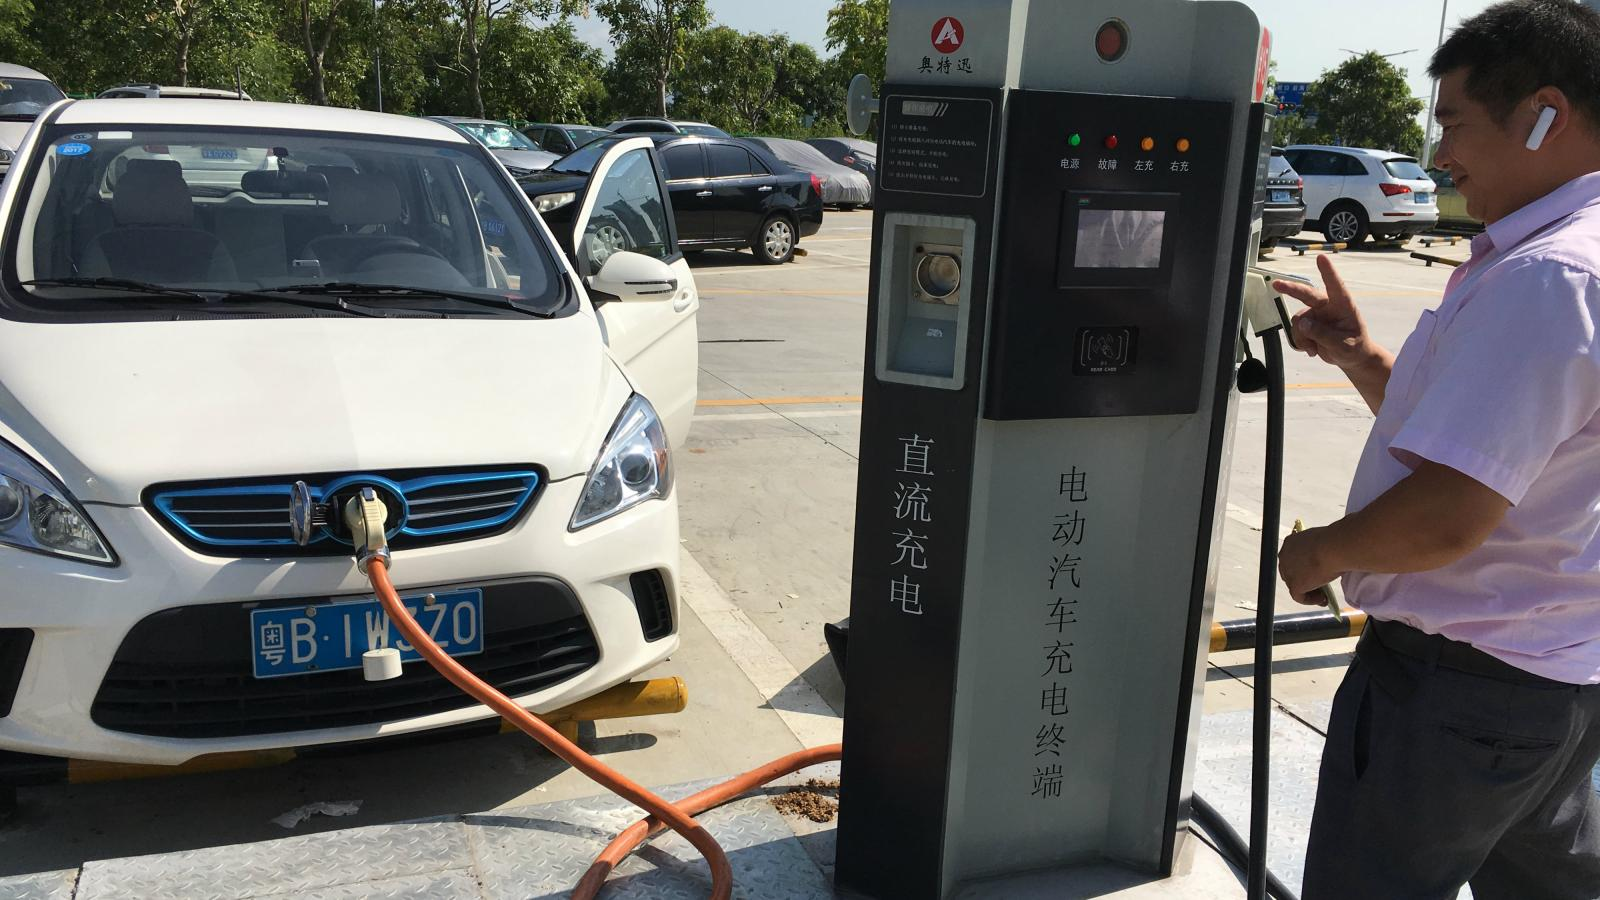 Didi Chuxing Plans To Build Electric Vehicle Charging Stations Across China Quartz,Best Artificial Christmas Tree 2020 Uk